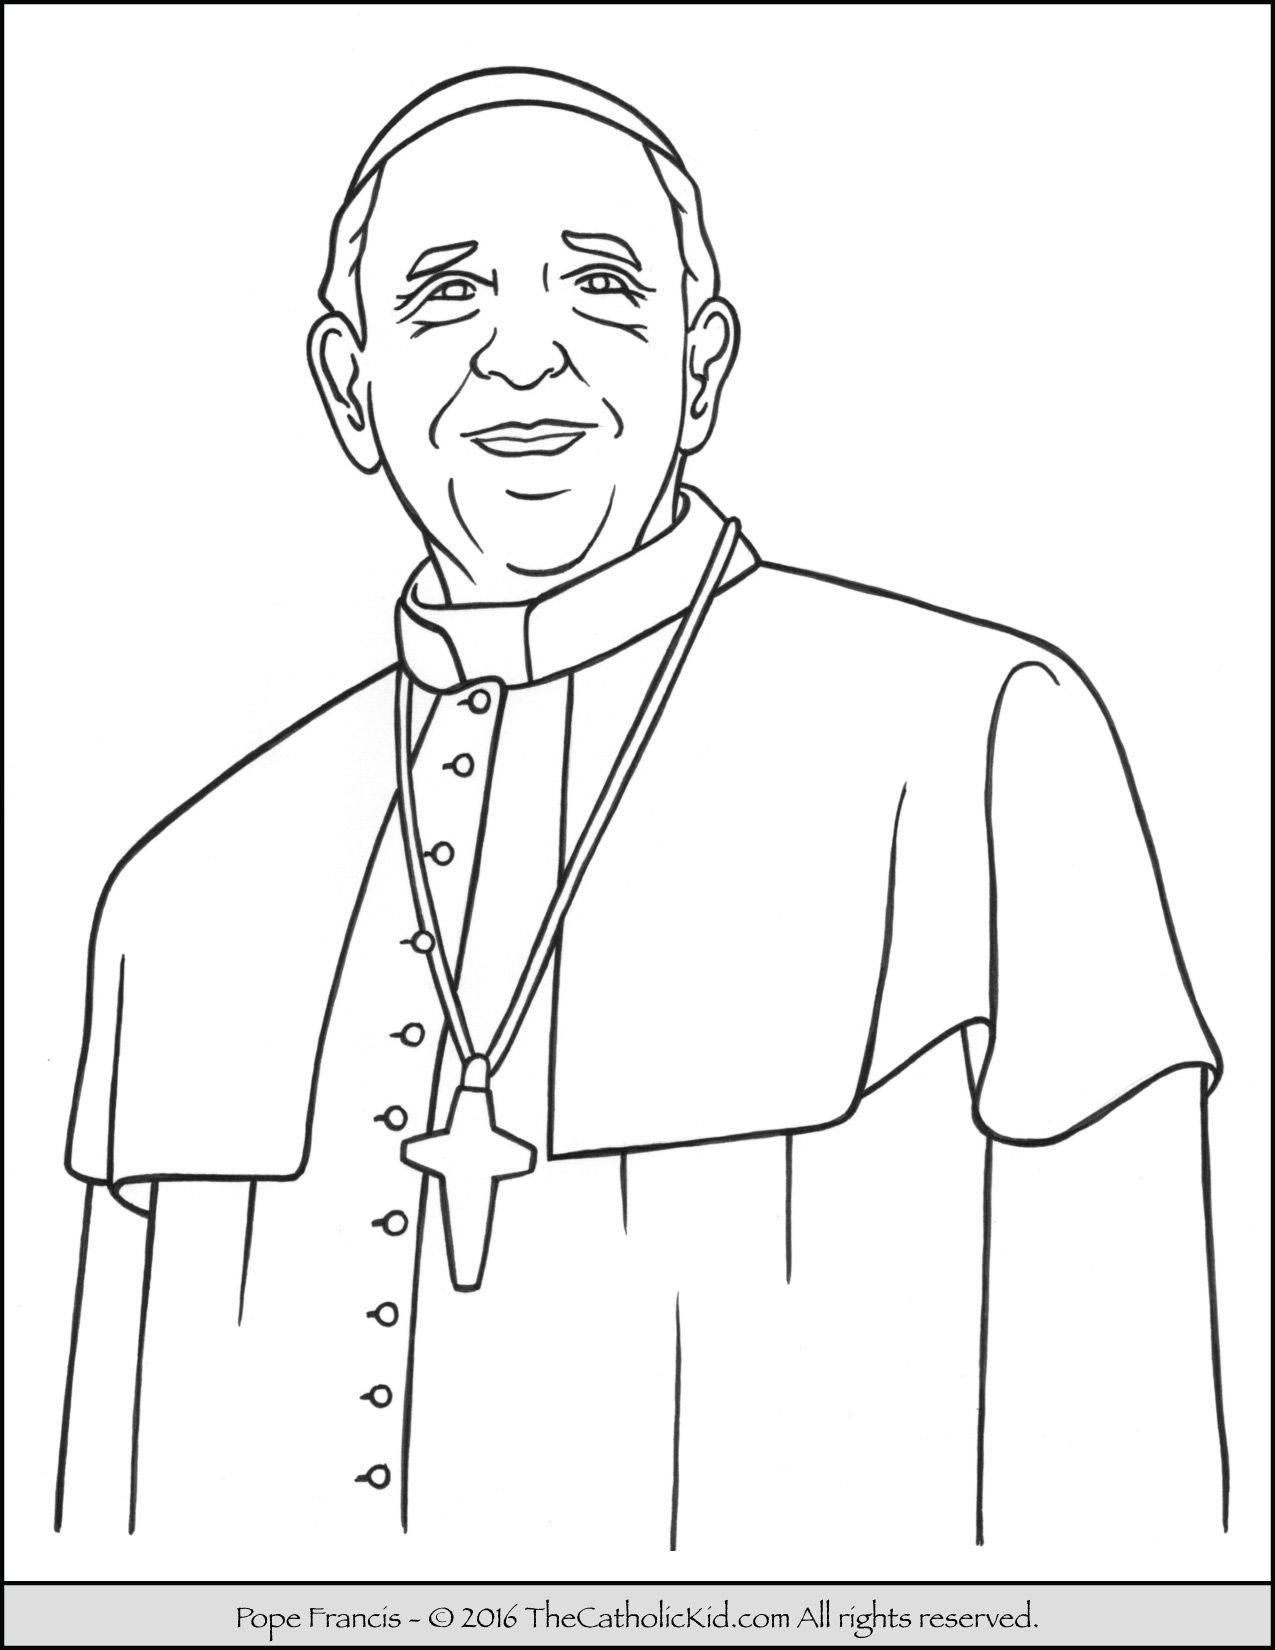 Pope Francis Coloring Page Thecatholickid Com Catholic